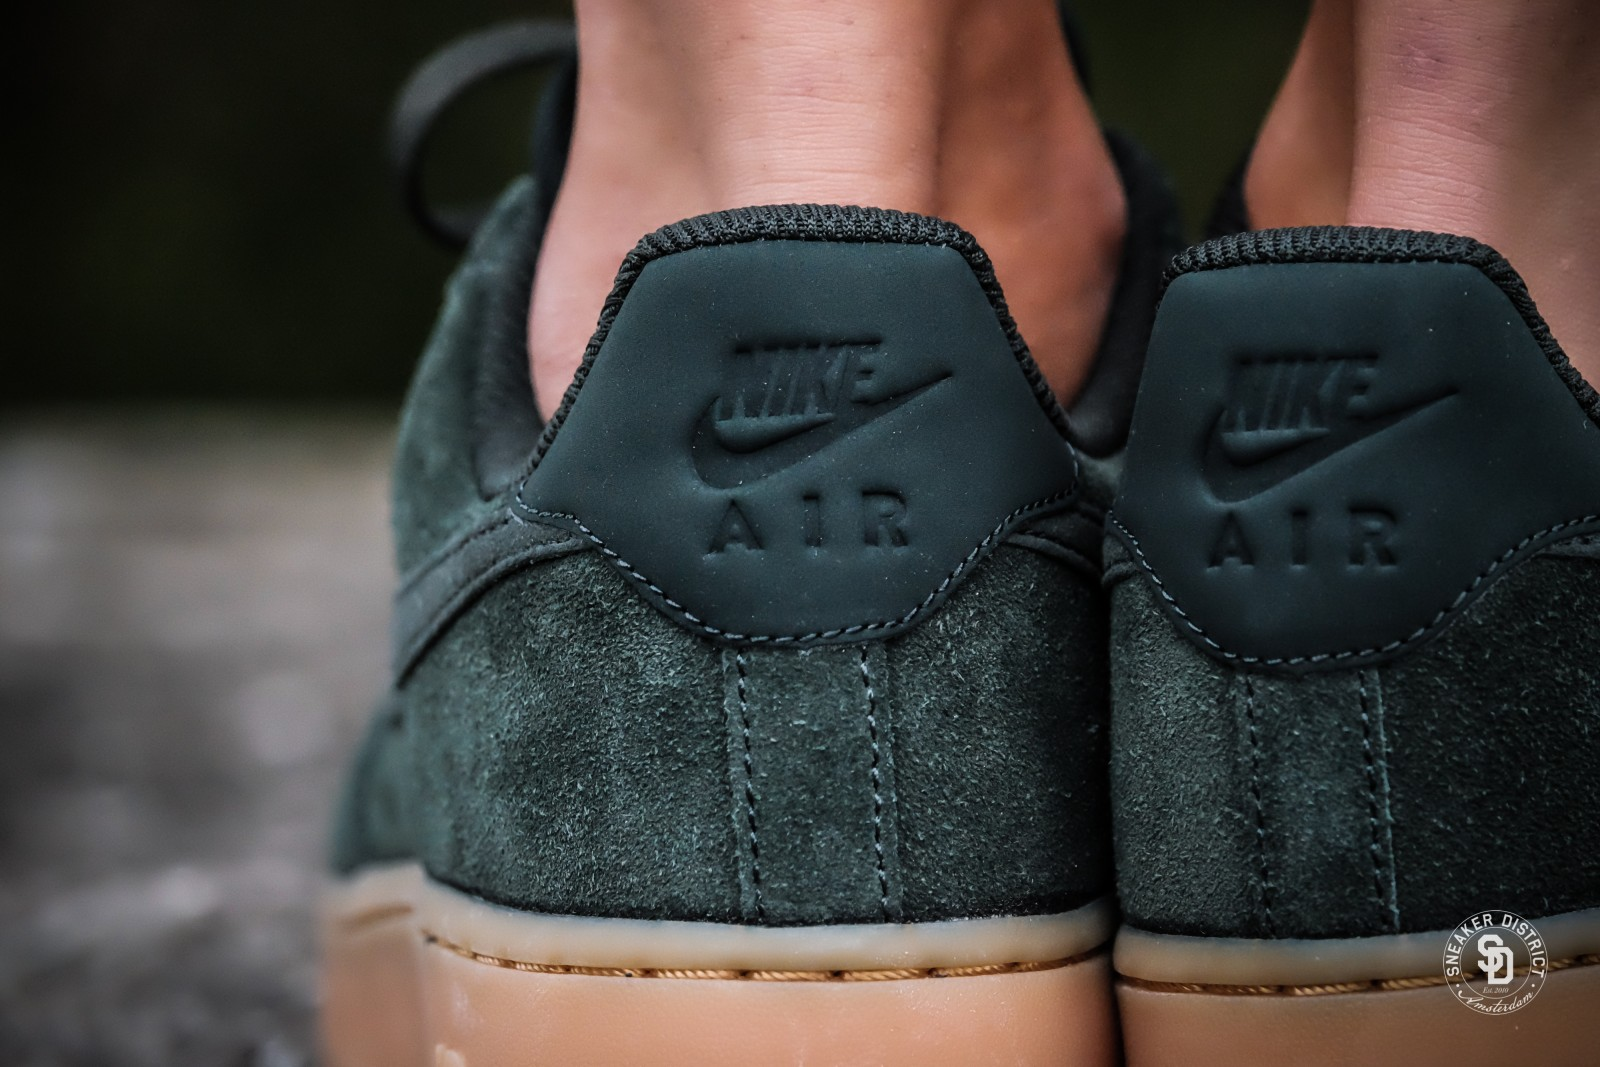 Nike WMNS Air Force 1 07 SE: On-Foot Shots - The Drop Date